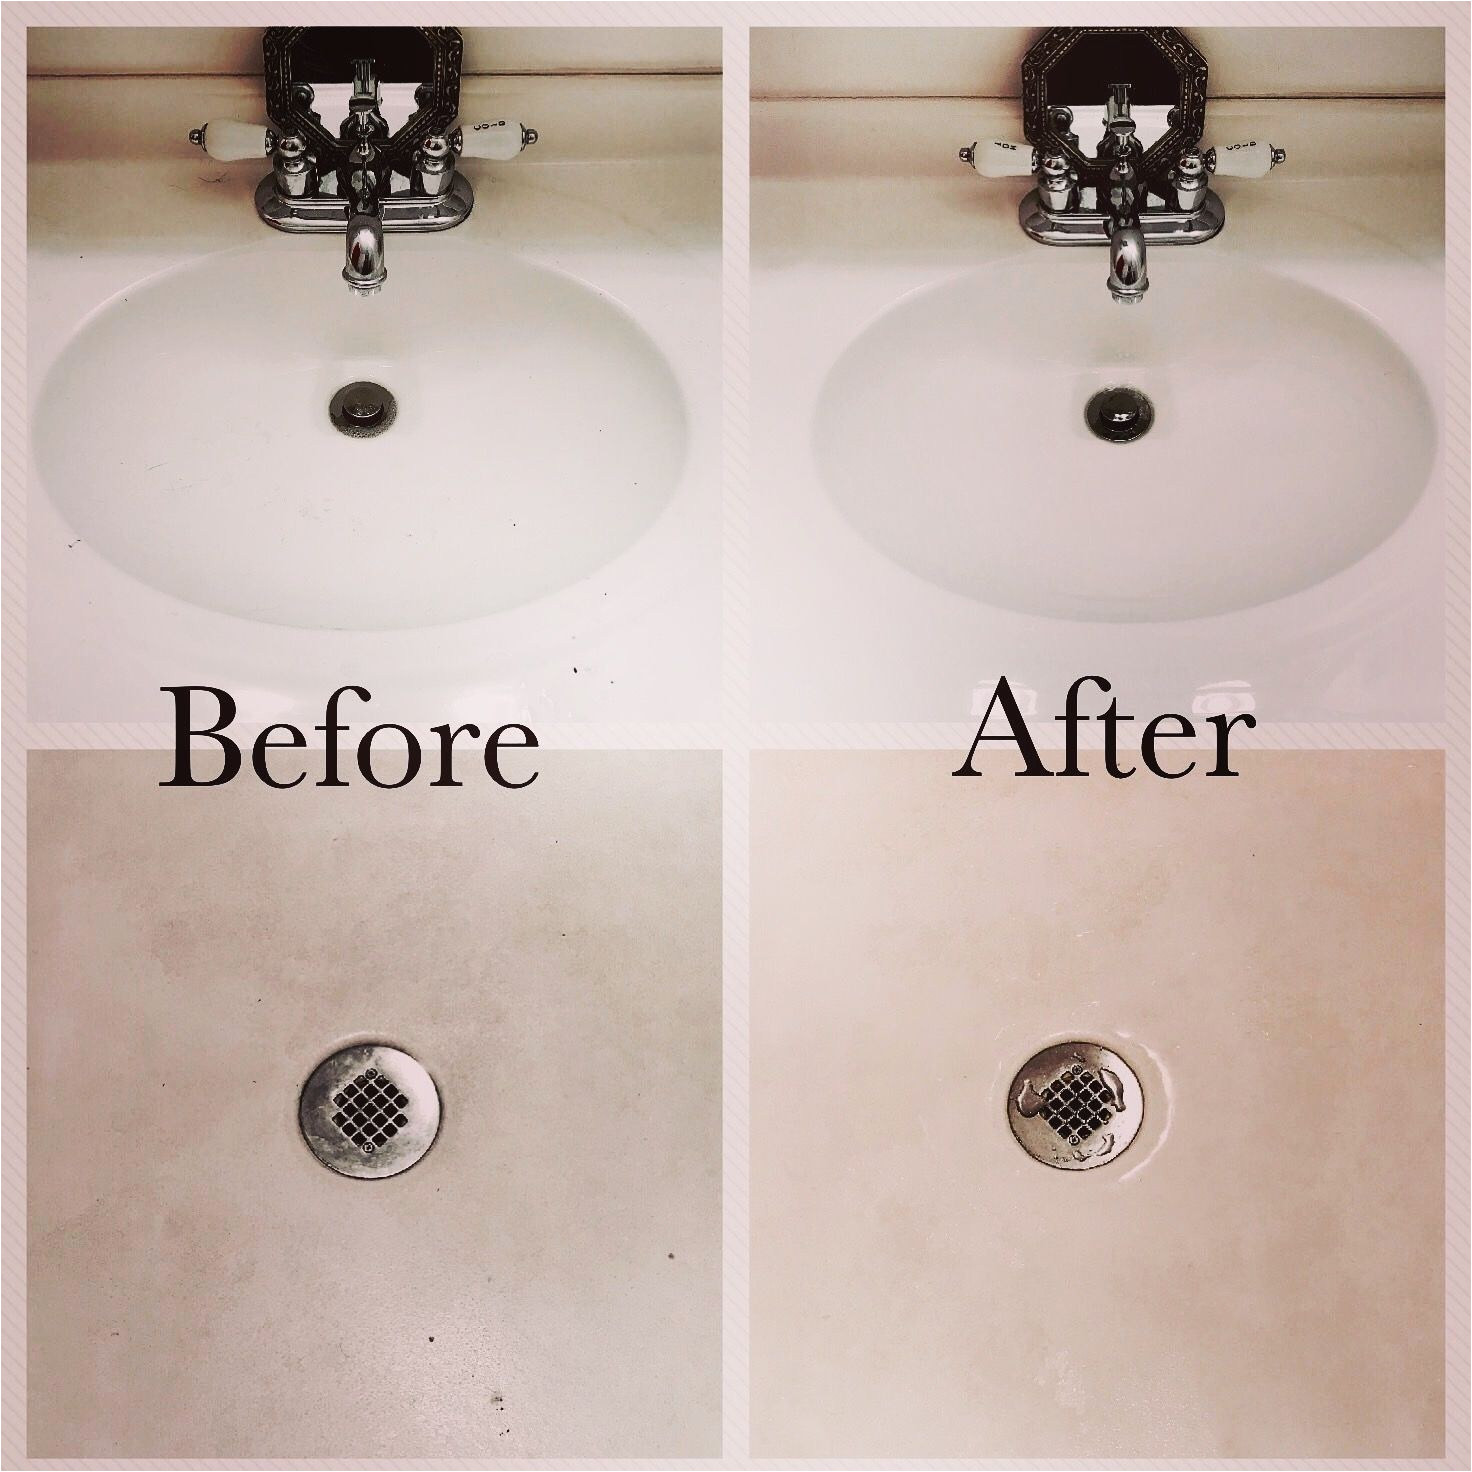 freesample i used kaboom no drip mildew mold stain remover with bleach on multiple